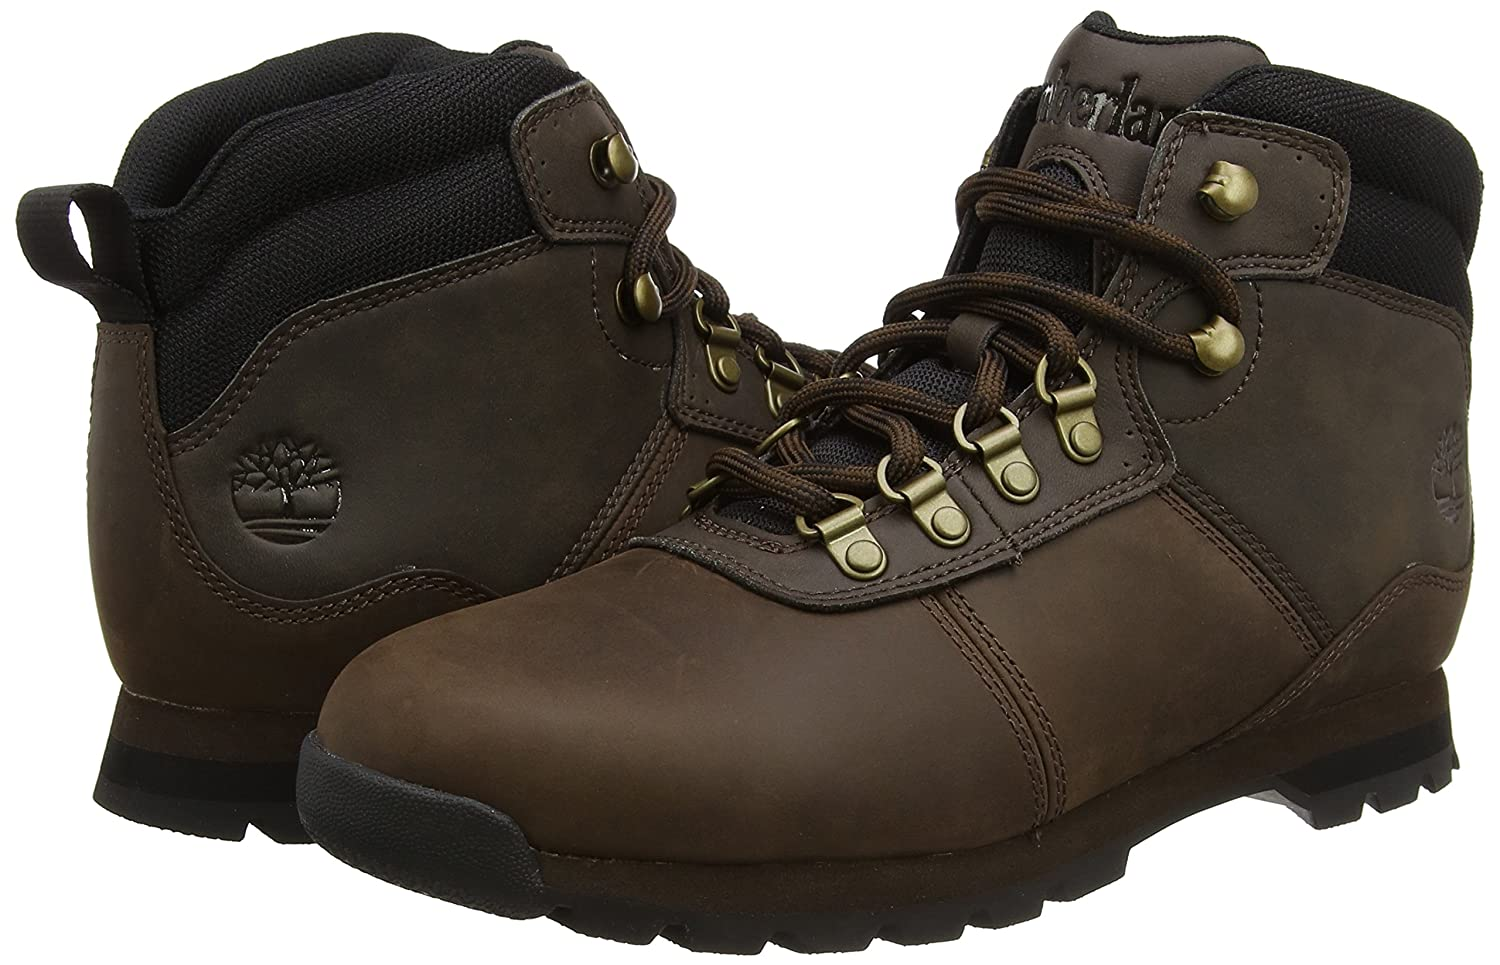 Timberland Men's Euro Sprint FTB_Euro Crest Cold Lined Classic Boots Short  Length Brown Size: 10: Amazon.co.uk: Shoes & Bags